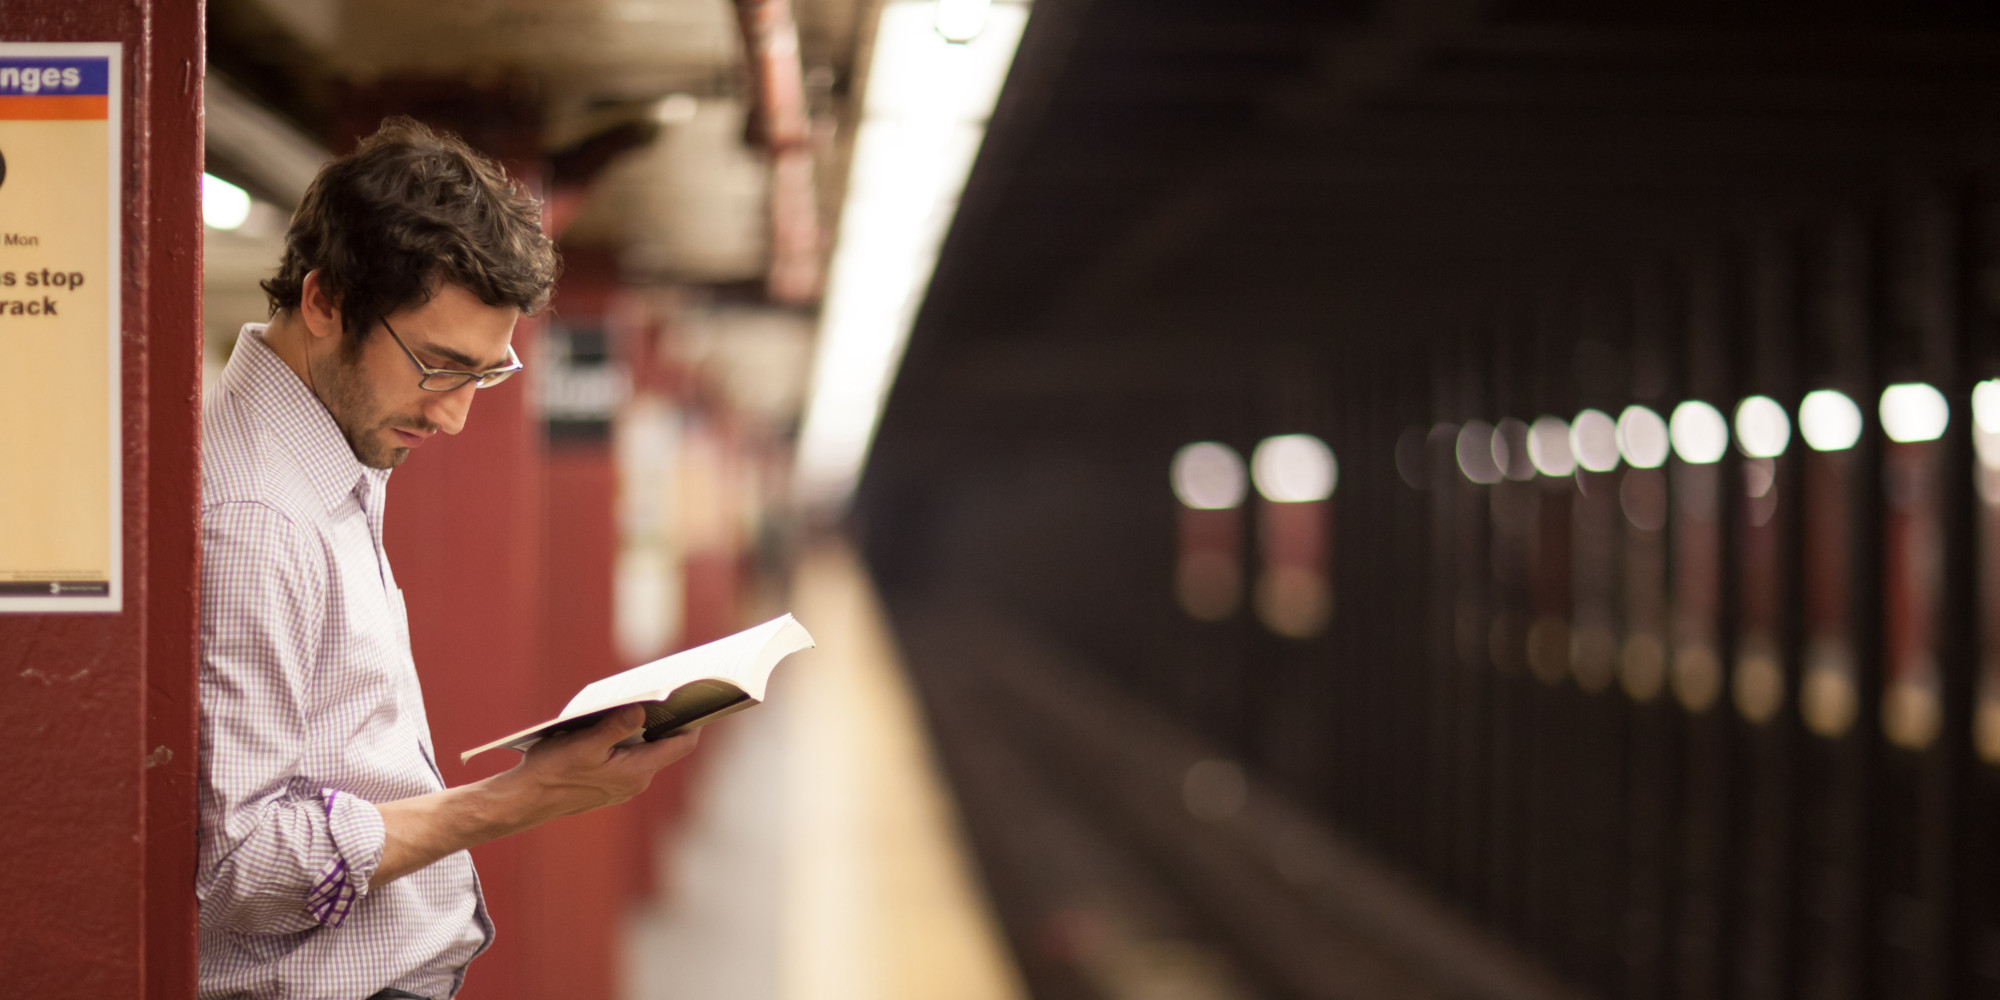 Waiting and Reading in the Subway